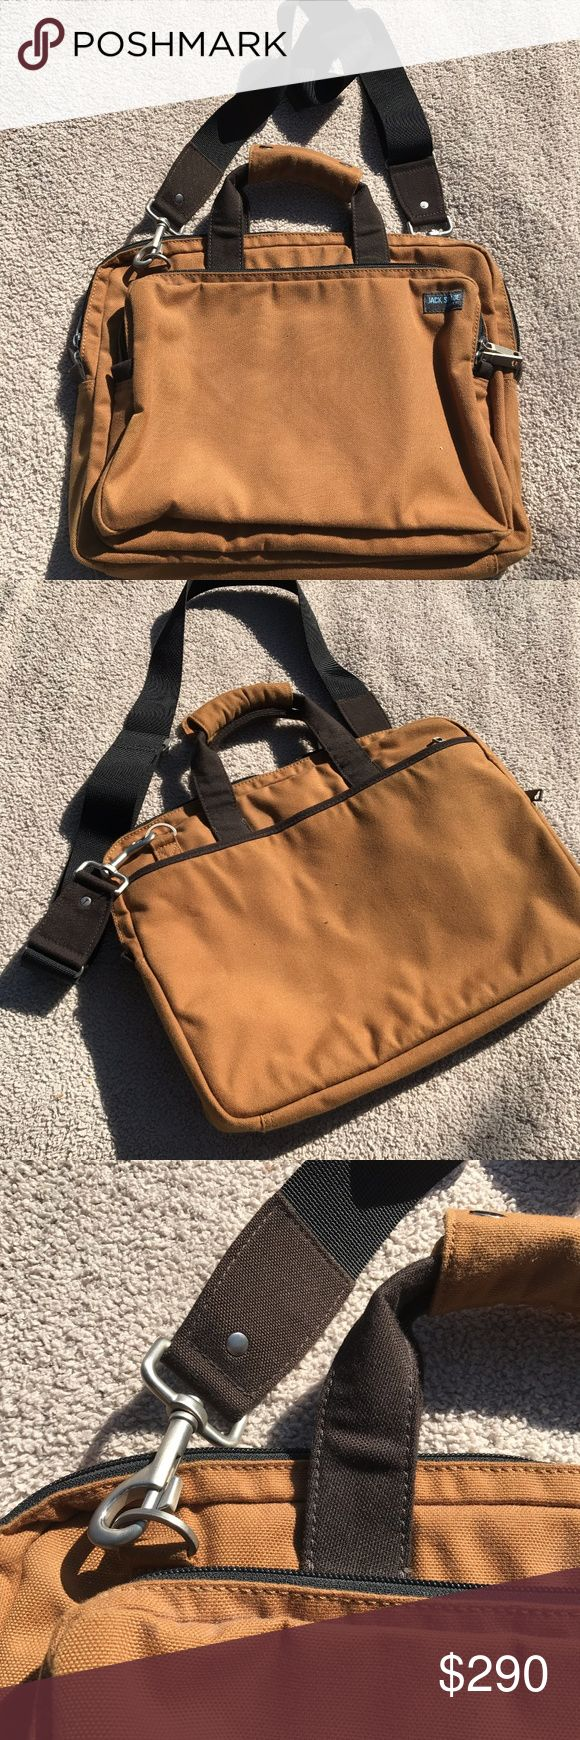 Jack Spade Canvas Briefcase Laptop Bag Gently used Excellent Condition  Multiple compartments and key carabiner to store all you need Jack Spade Bags Briefcases